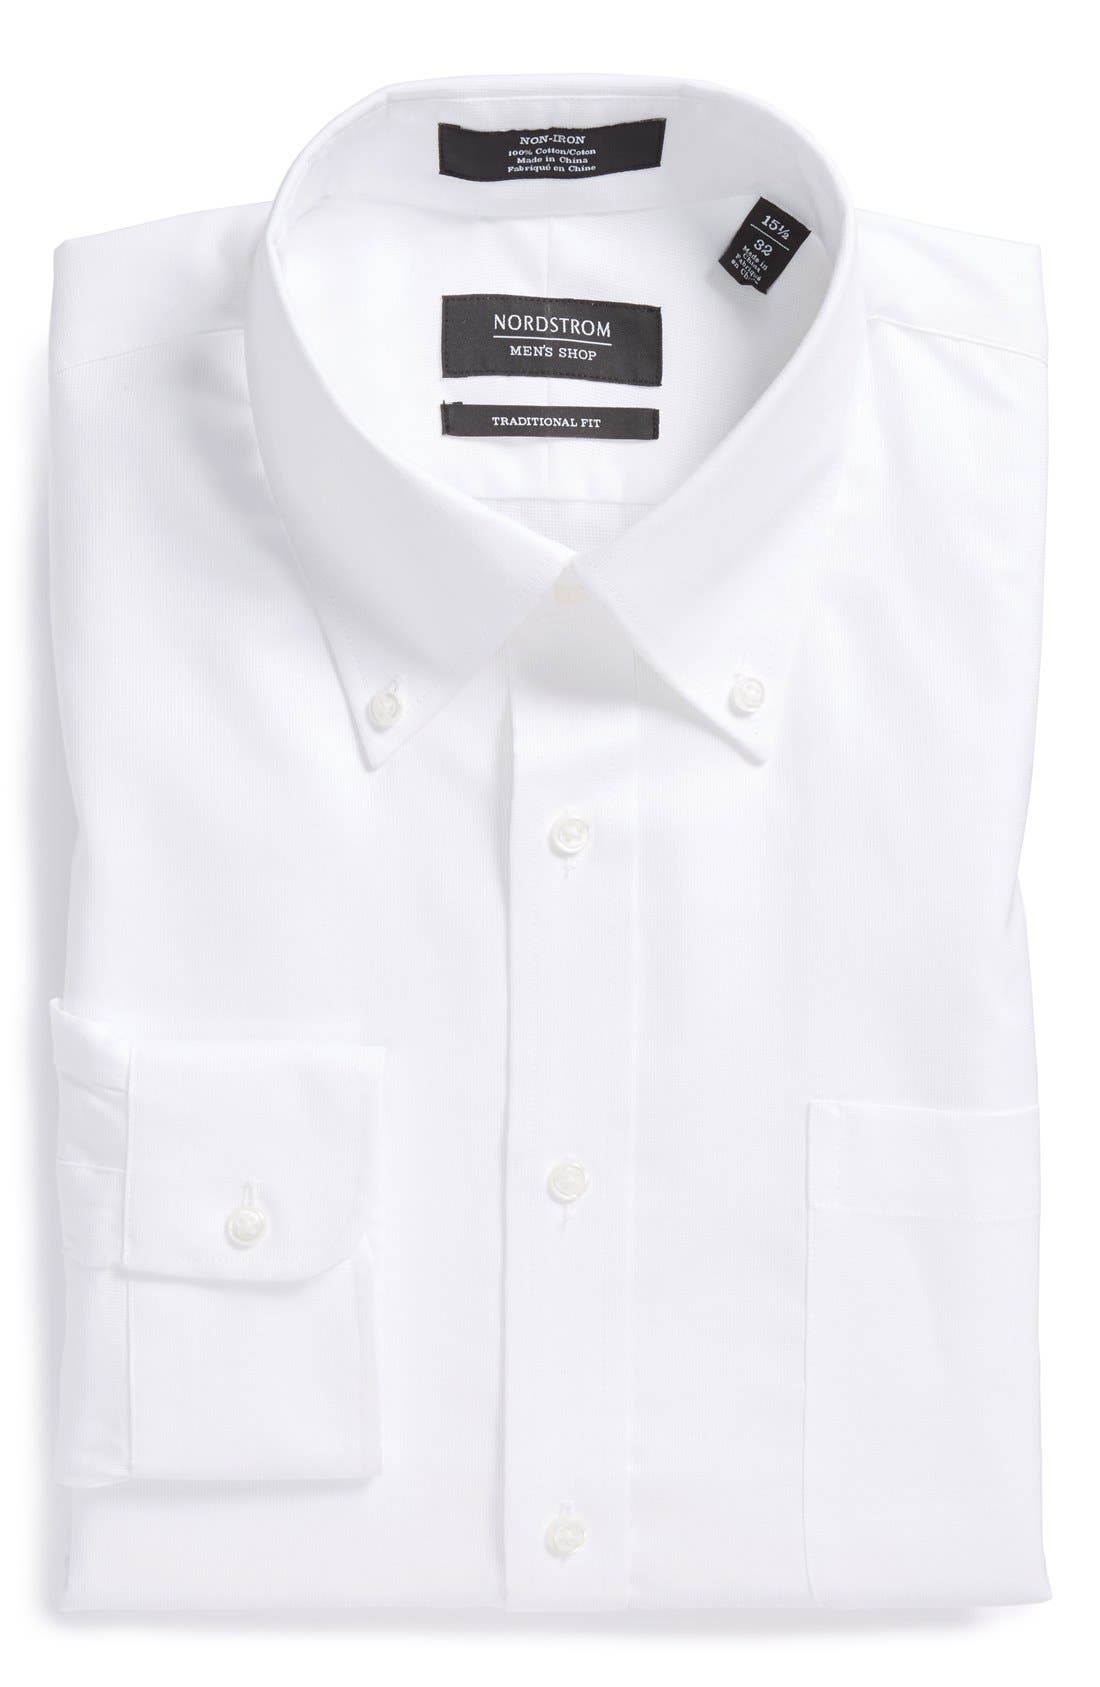 NORDSTROM MEN'S SHOP,                             Nordstrom Traditional Fit Non-Iron Dress Shirt,                             Main thumbnail 1, color,                             100